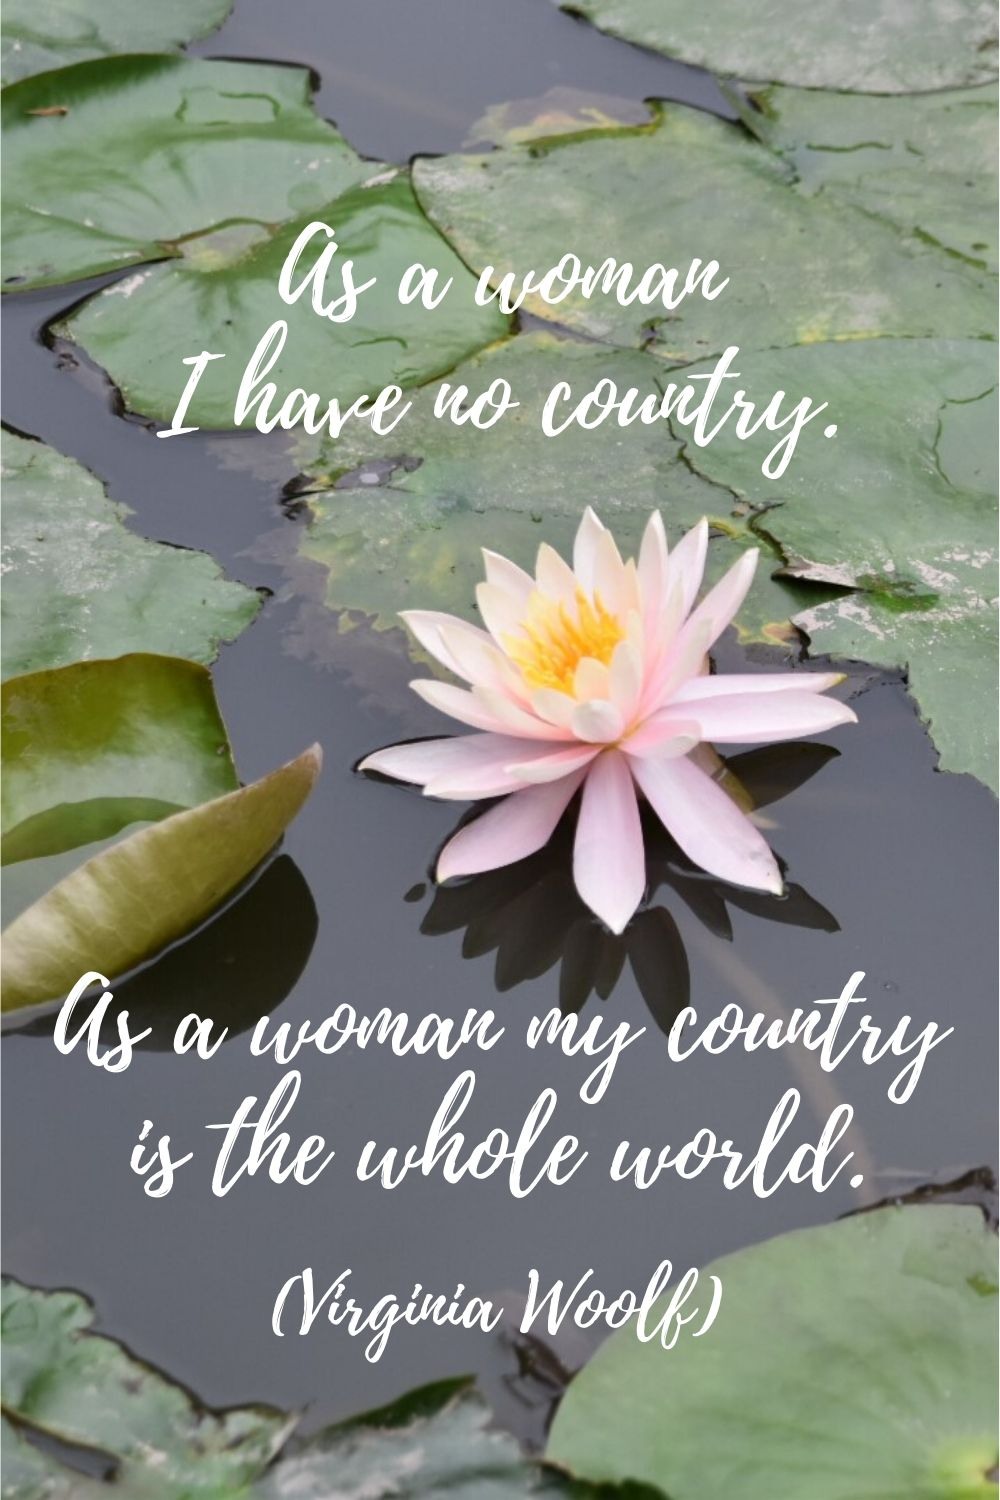 As a woman, I have no country. As a woman, my country is the whole world. Quotes by Virginia Woolf